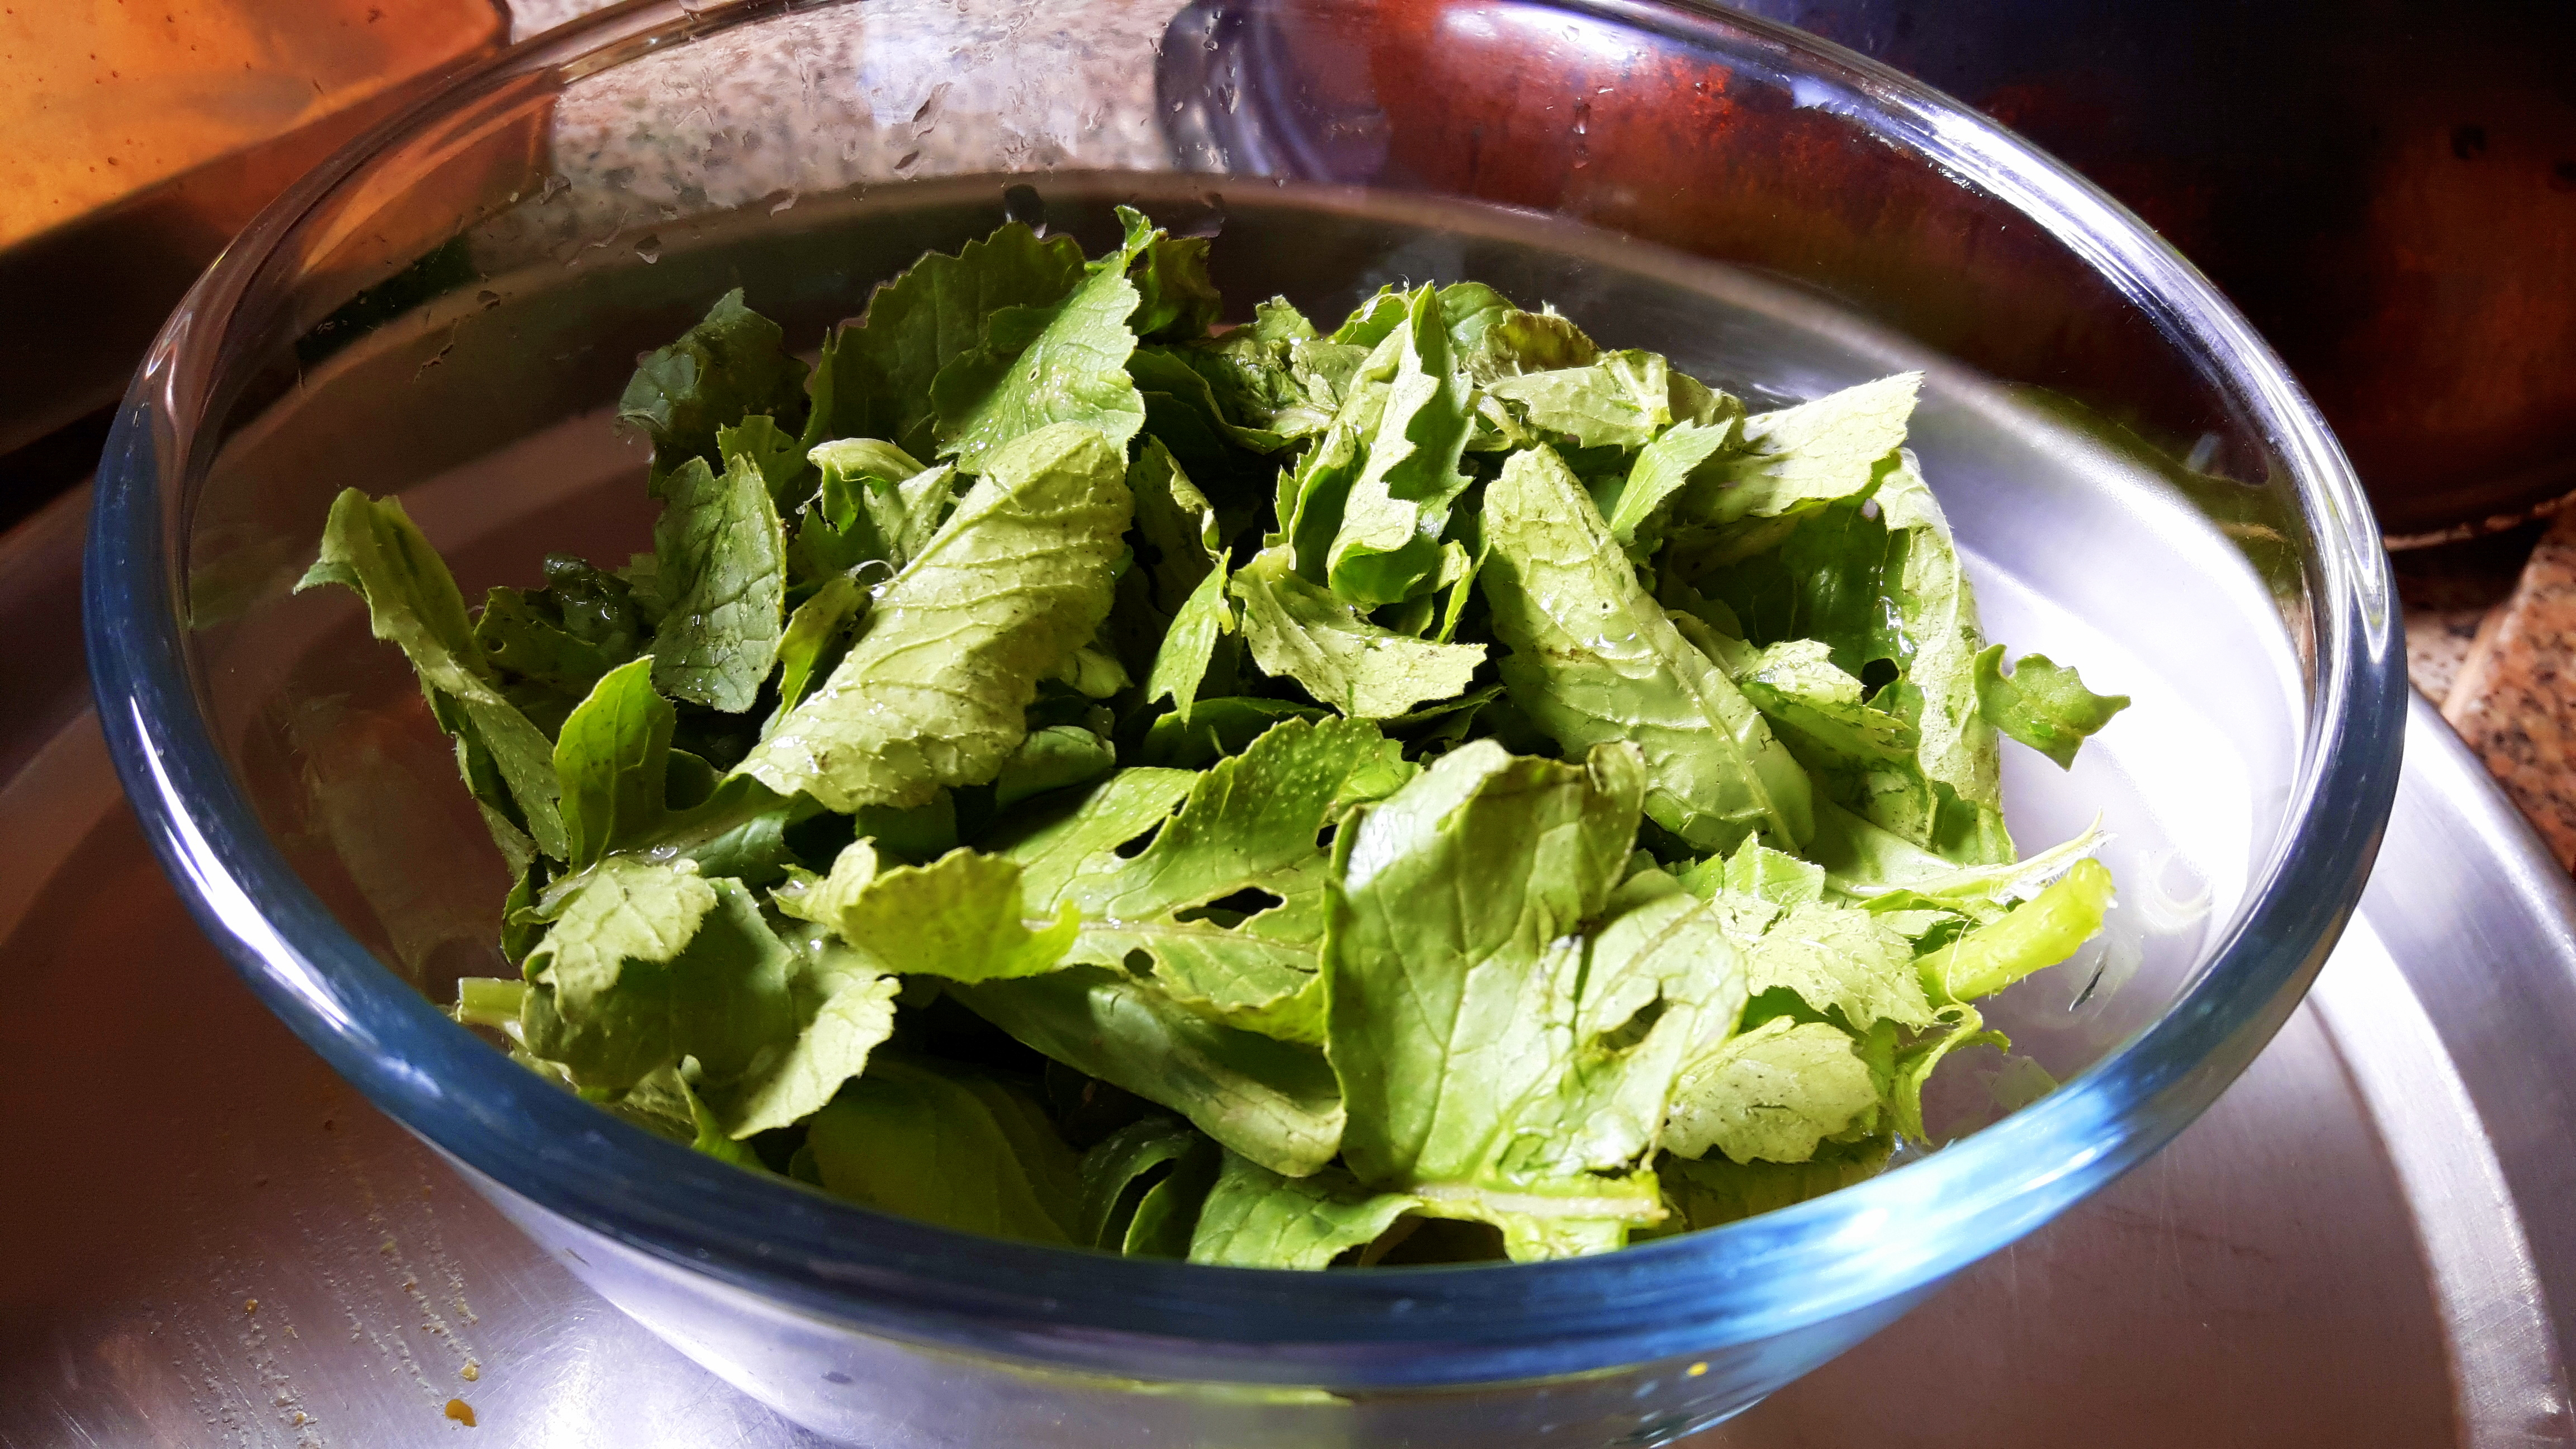 chop roughly and boil/microwave radish leaves